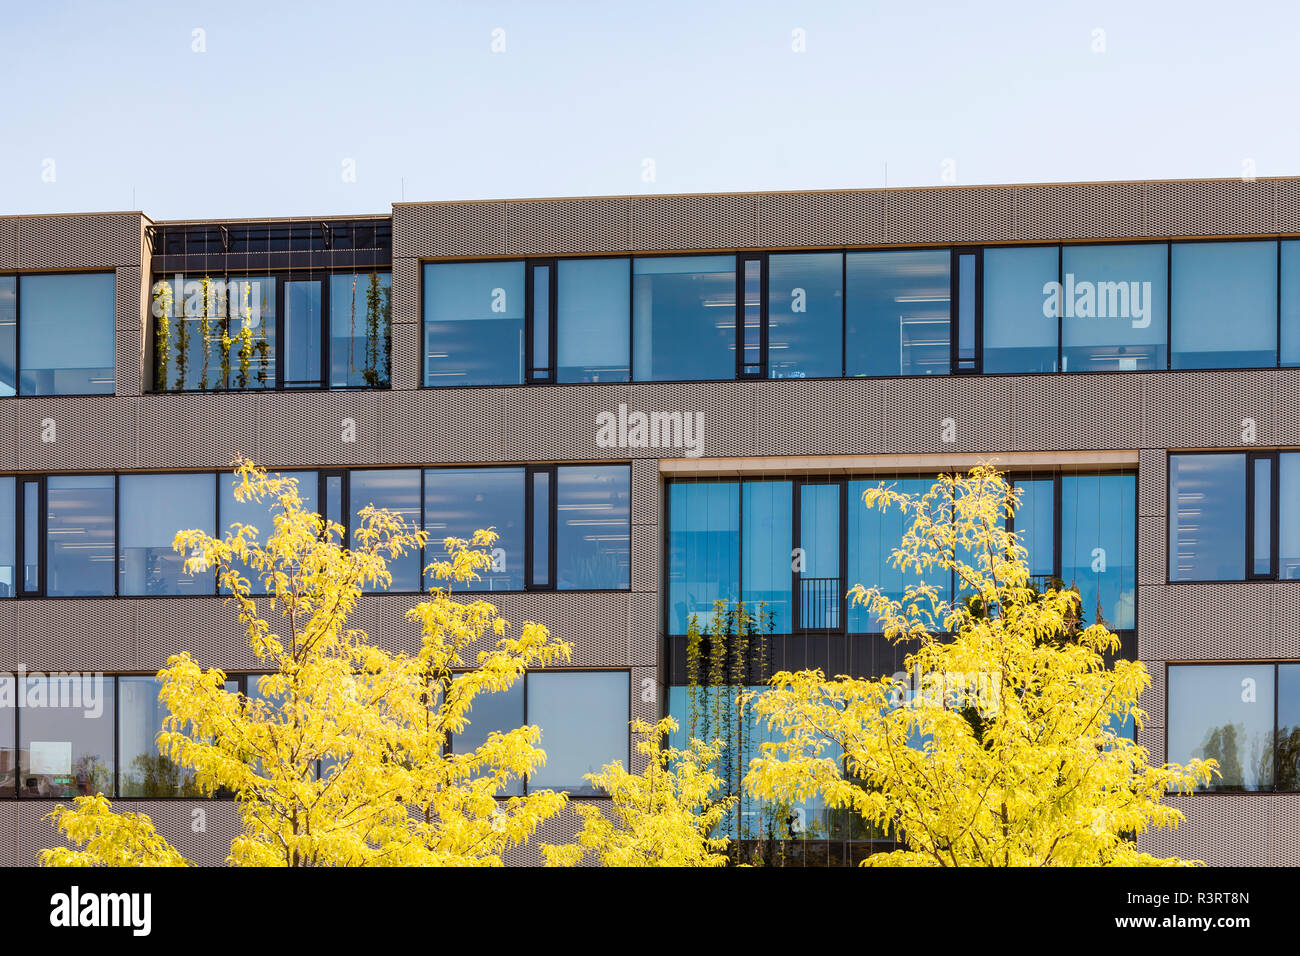 Germany, Karlsruhe, Office building with passive house standard at Kreativpark - Stock Image